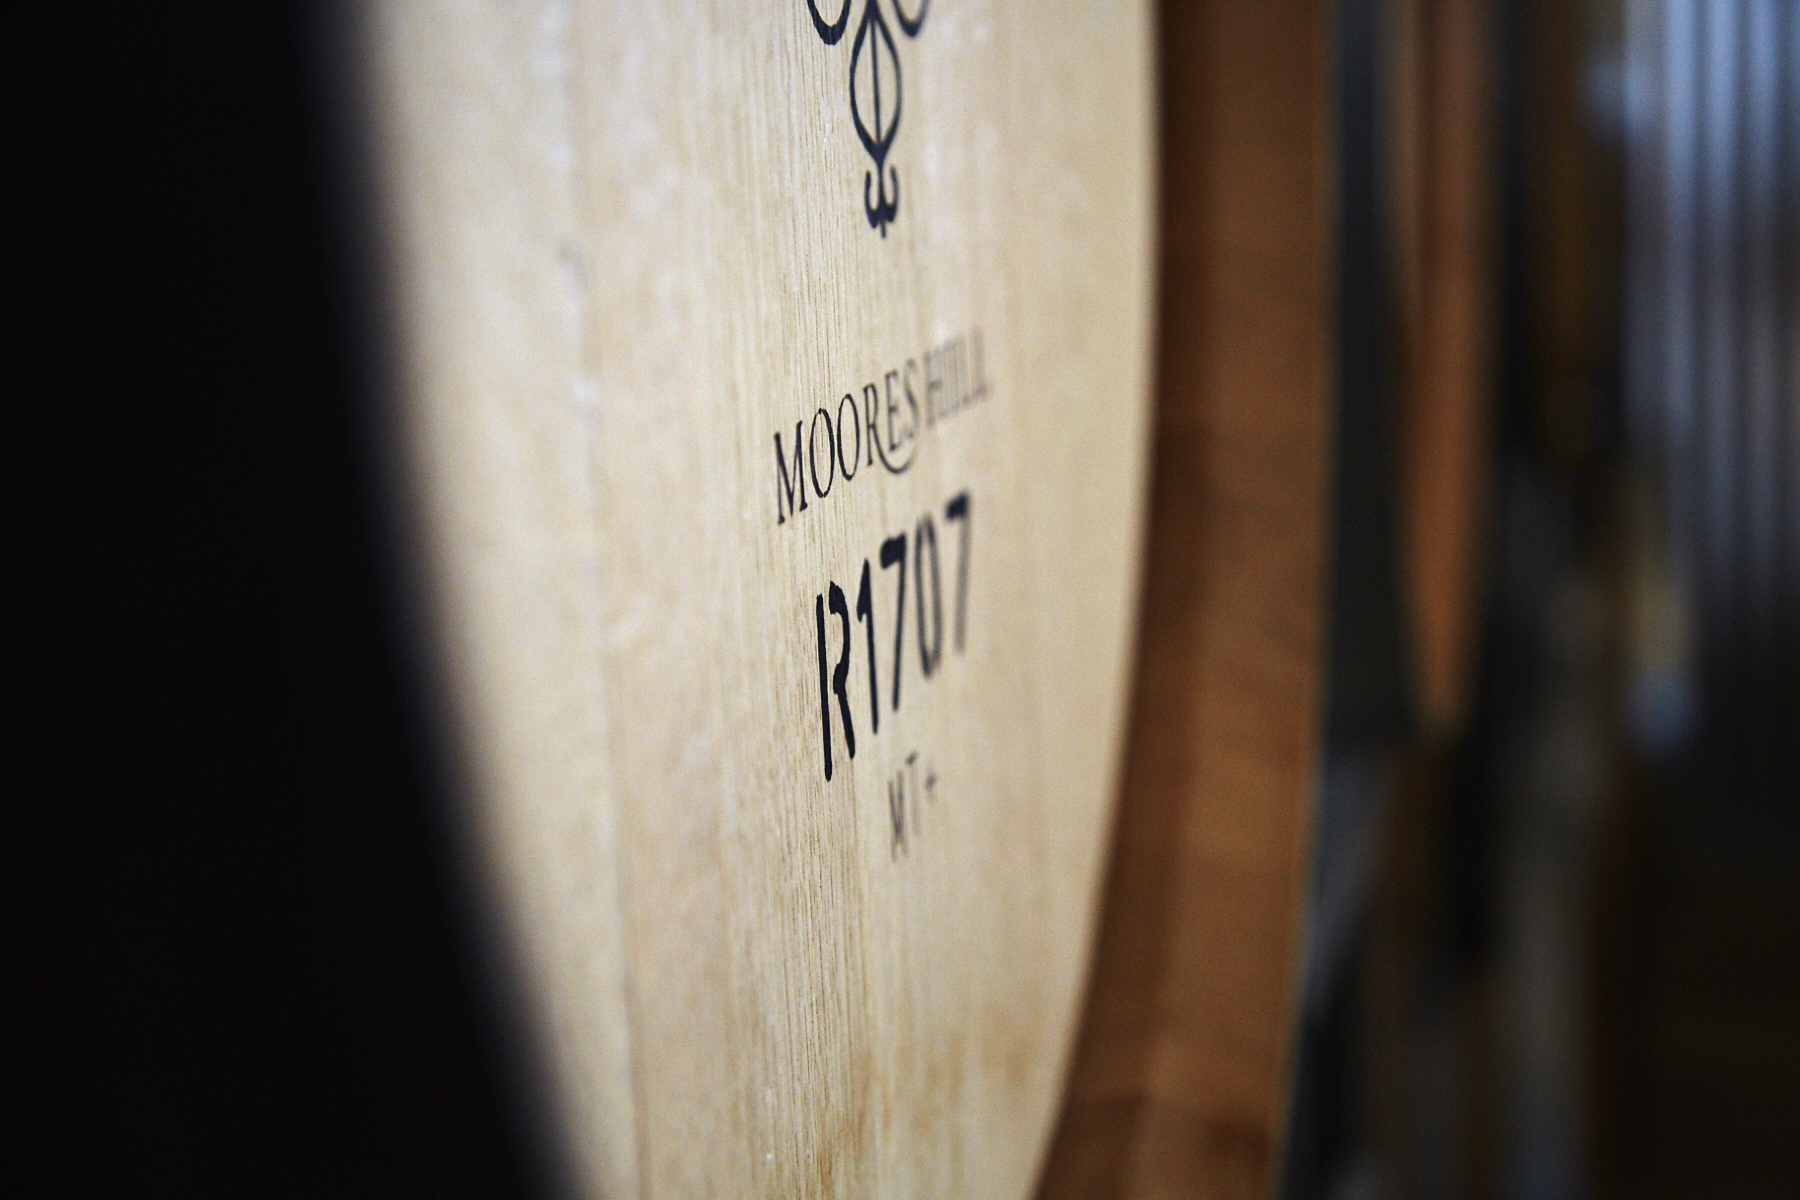 Our Chardonnay is matured in French oak barrels